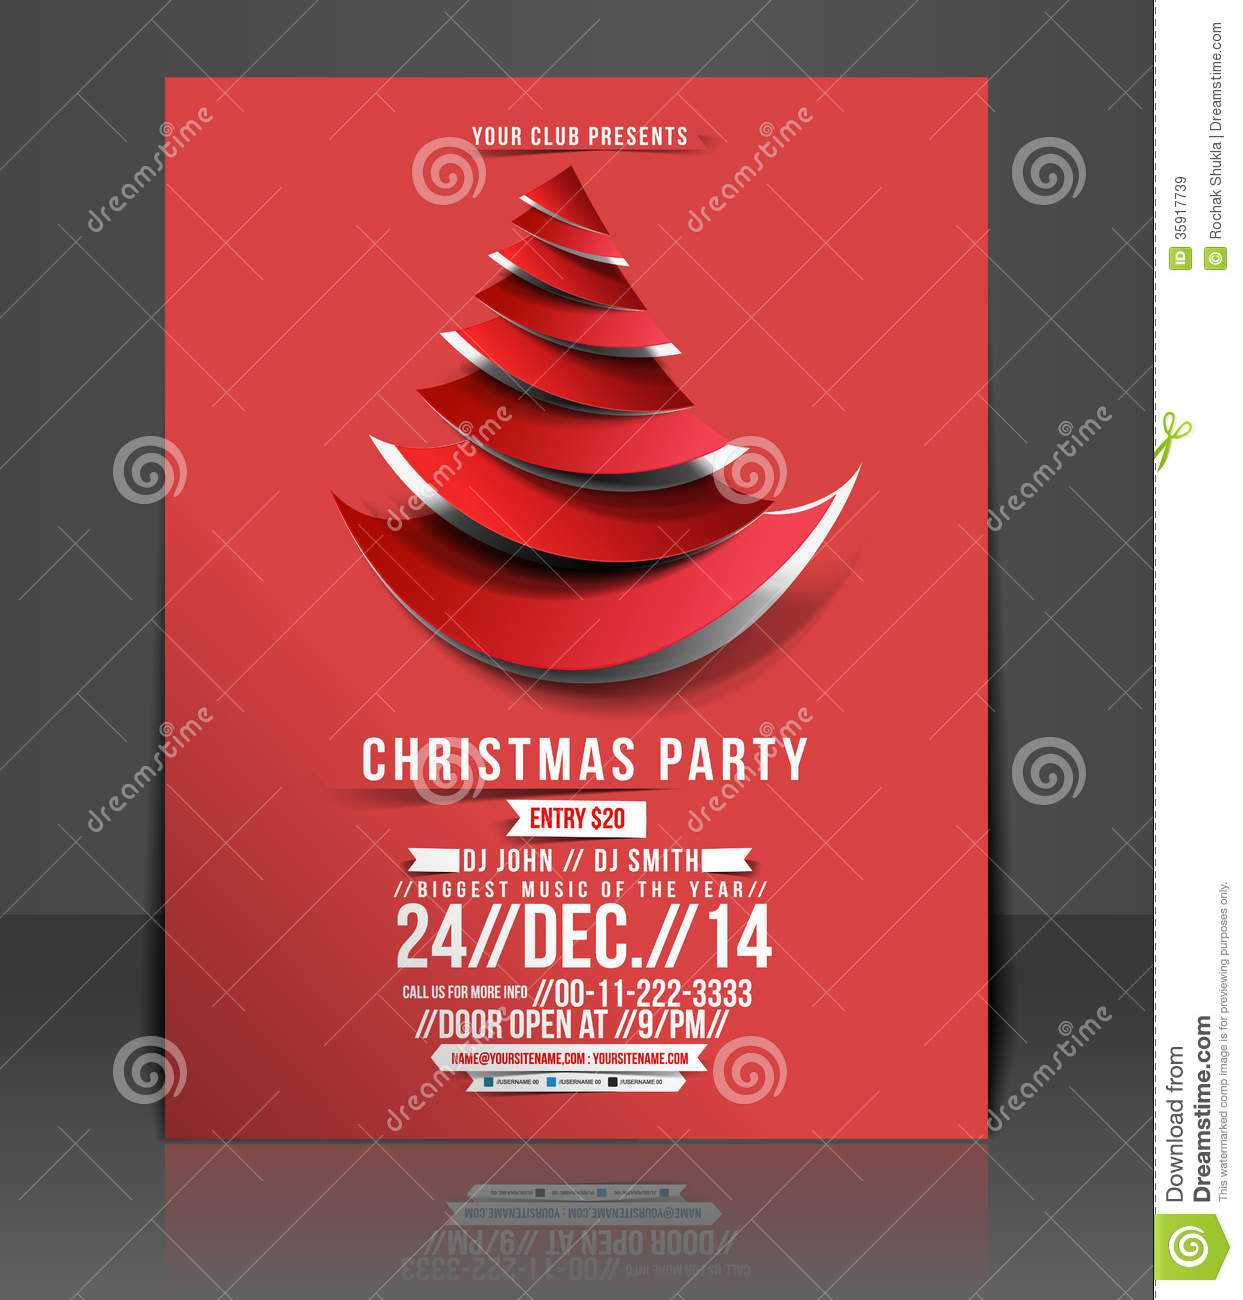 Christmas Party Flyer Stock Vector. Illustration Of Event With Regard To Free Christmas Party Flyer Templates